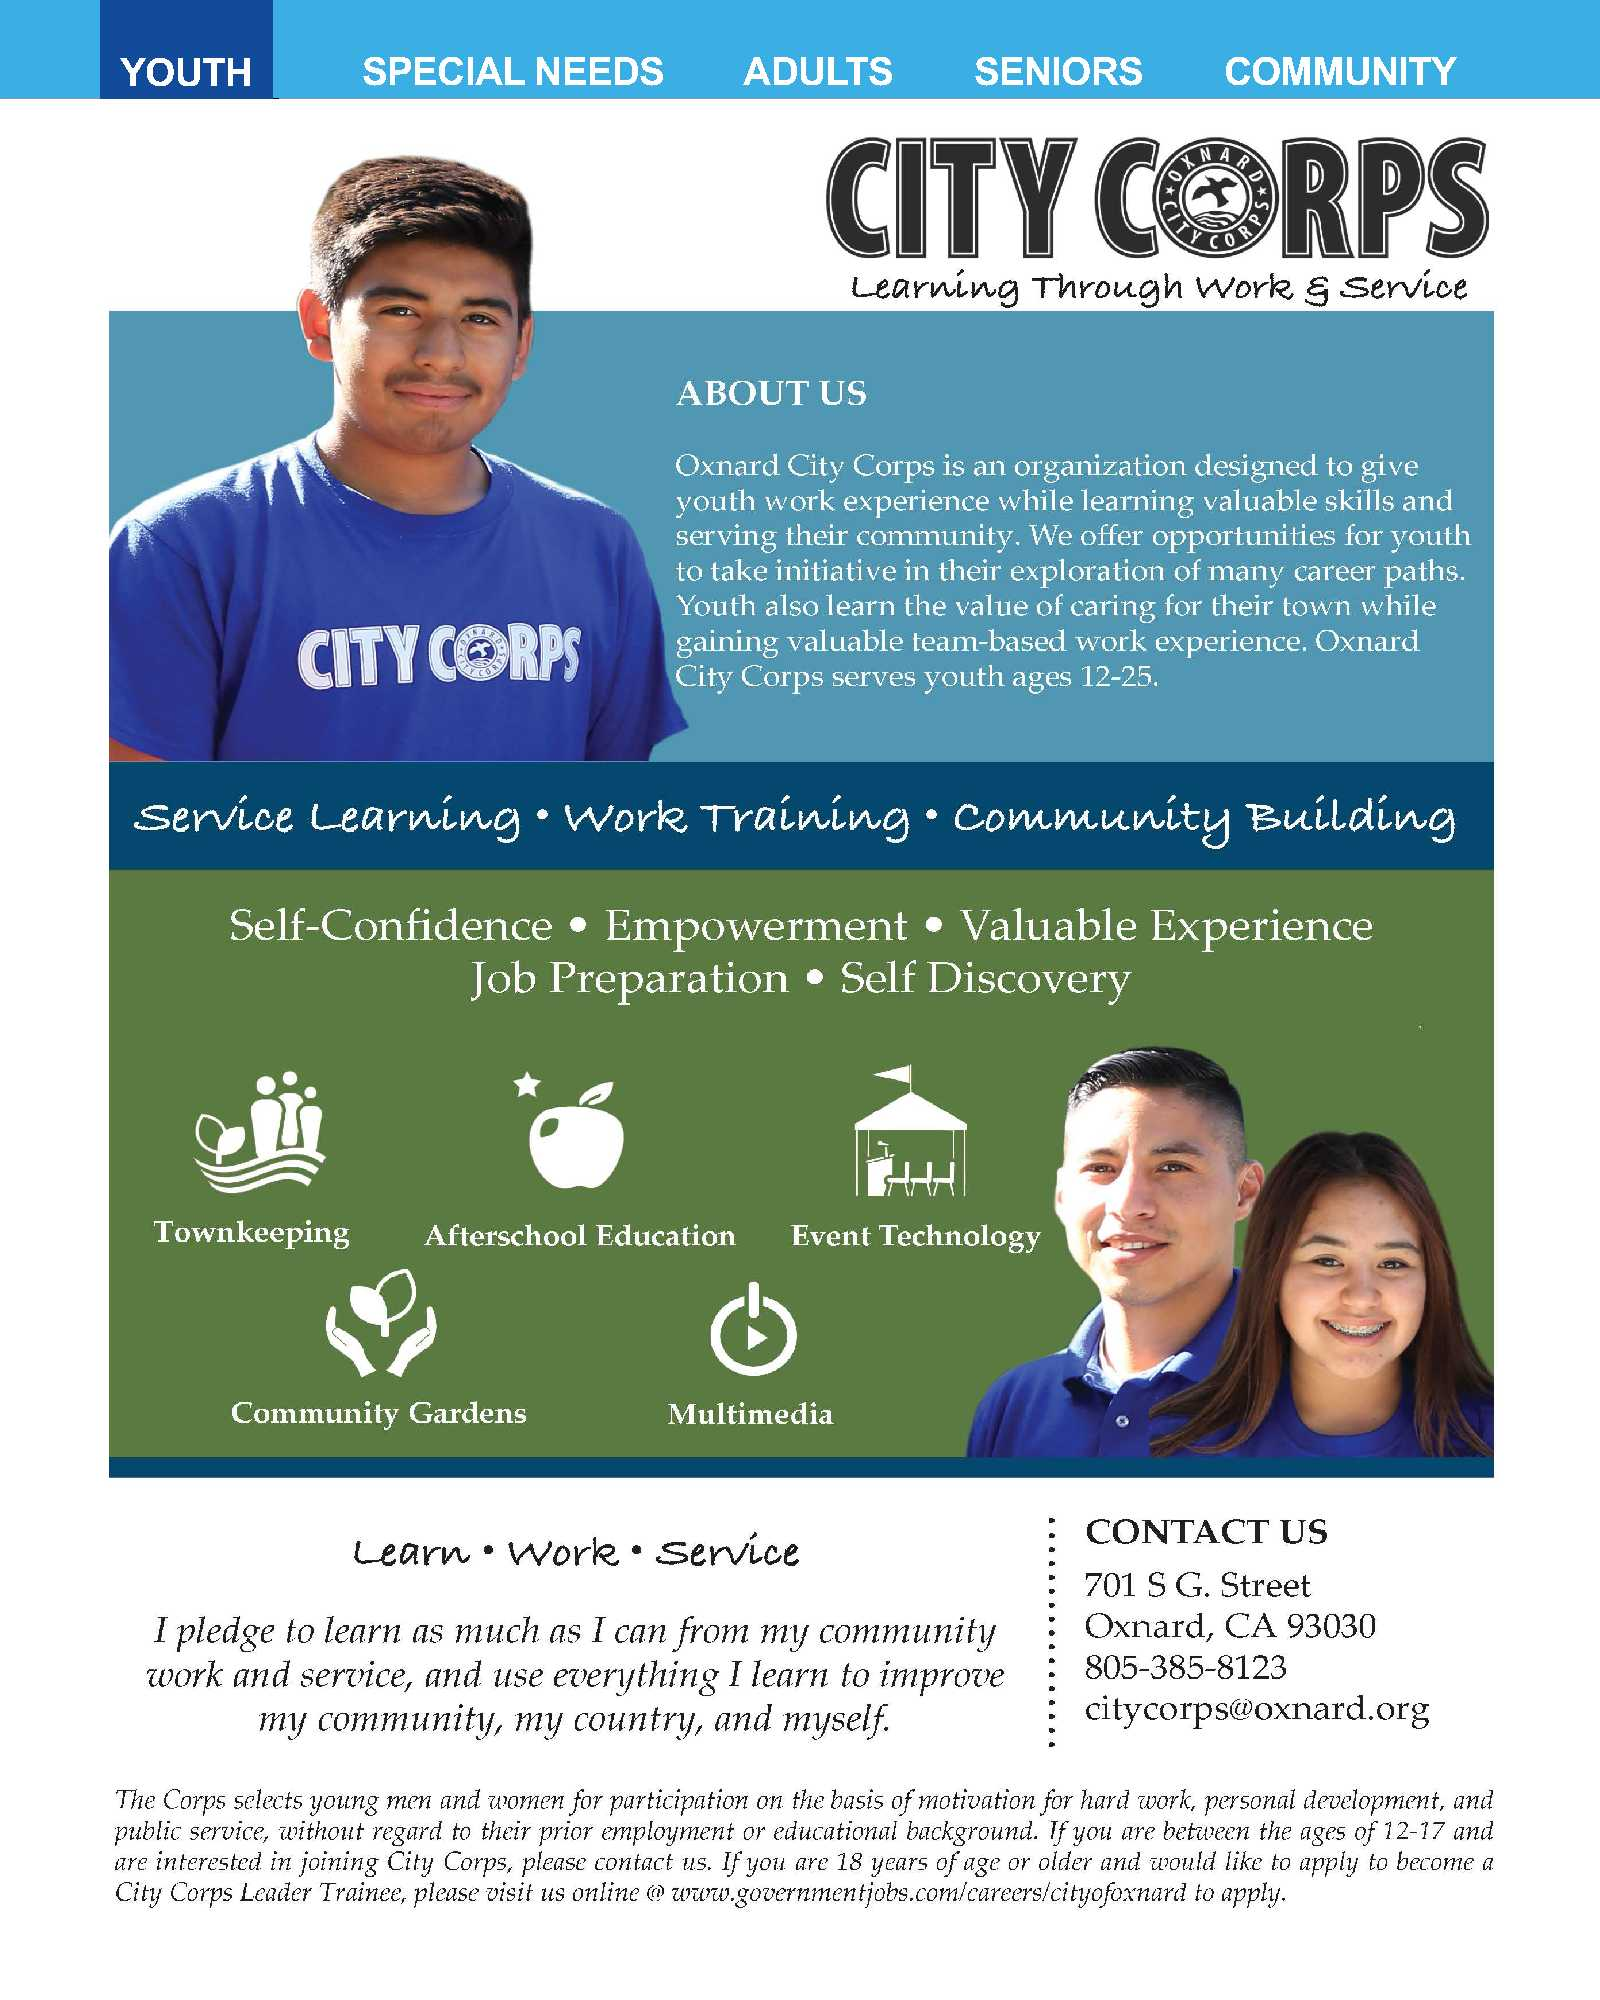 CITY CORPS Learning Through Work and Service